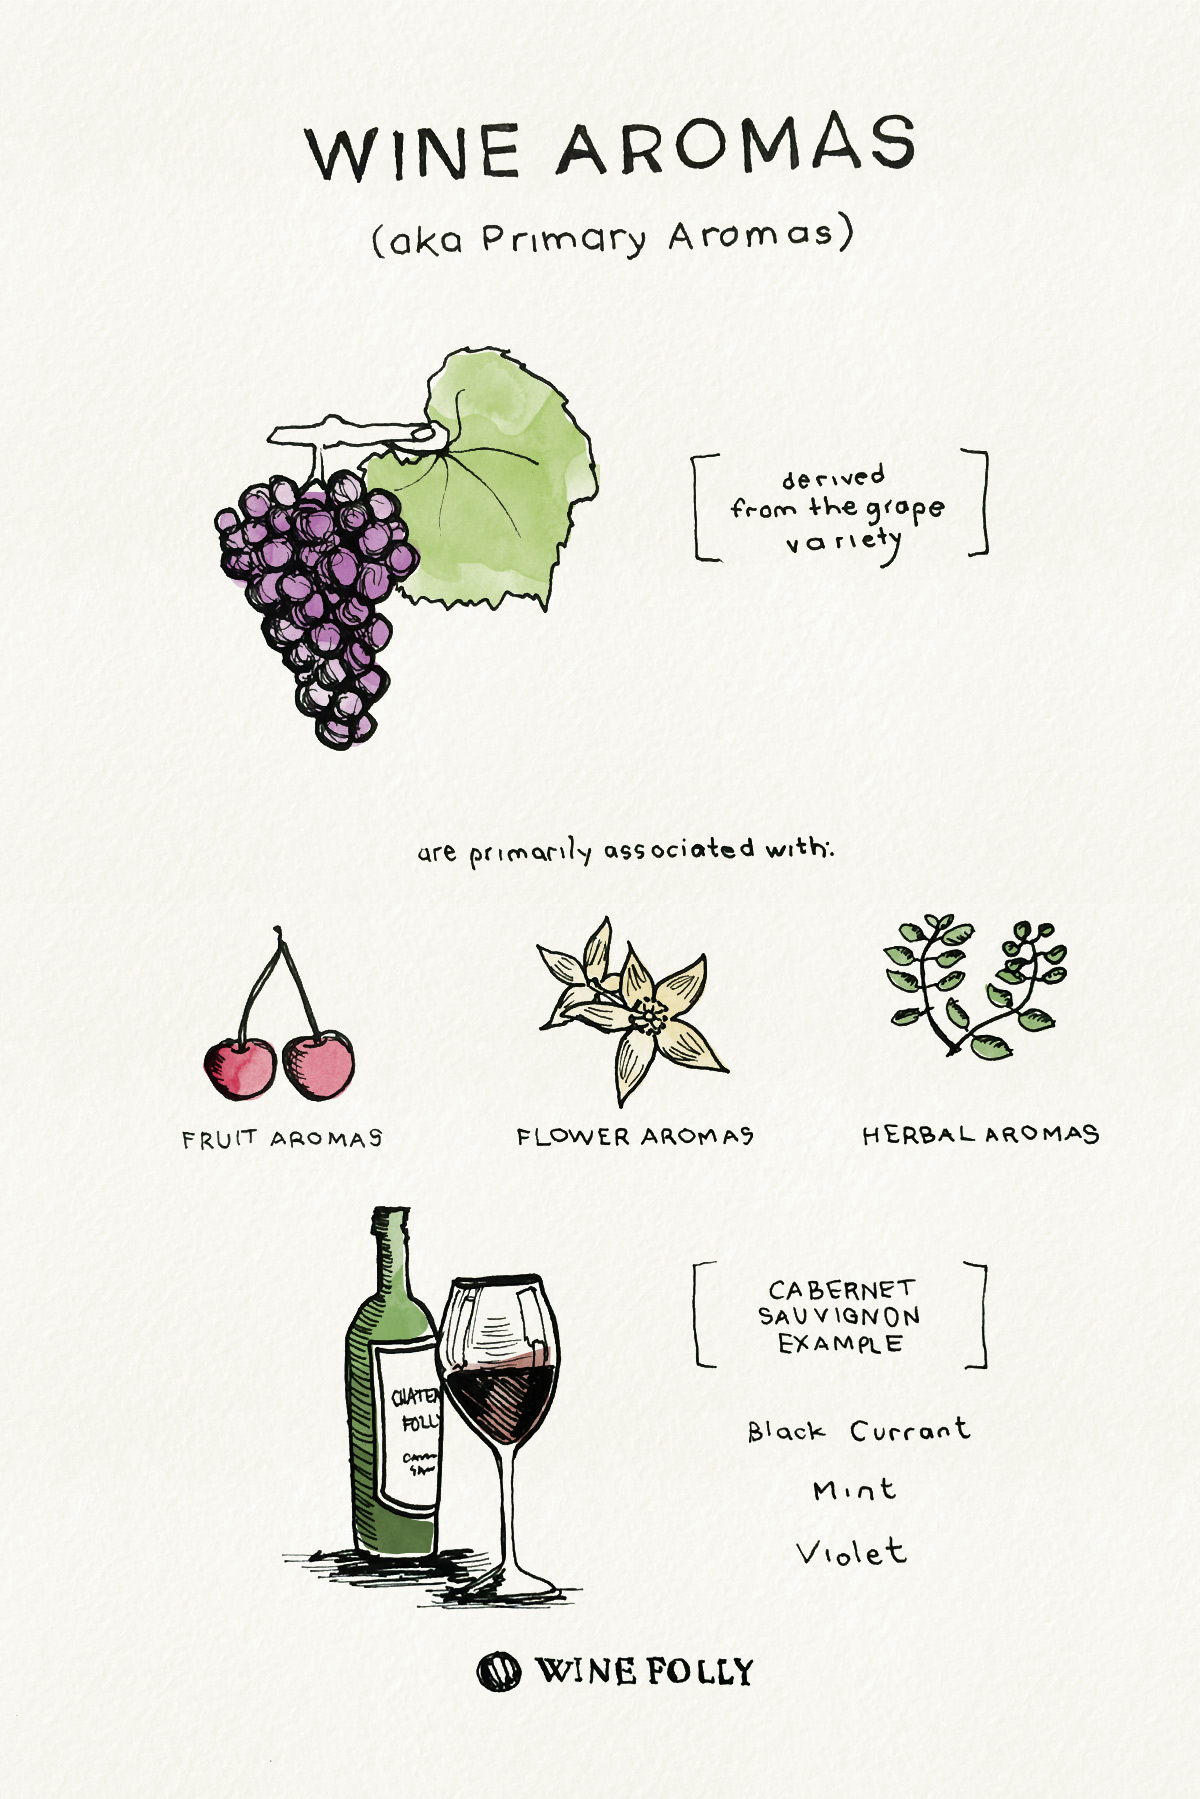 Wine Aromas - Primary Aromas - drawing by Wine Folly